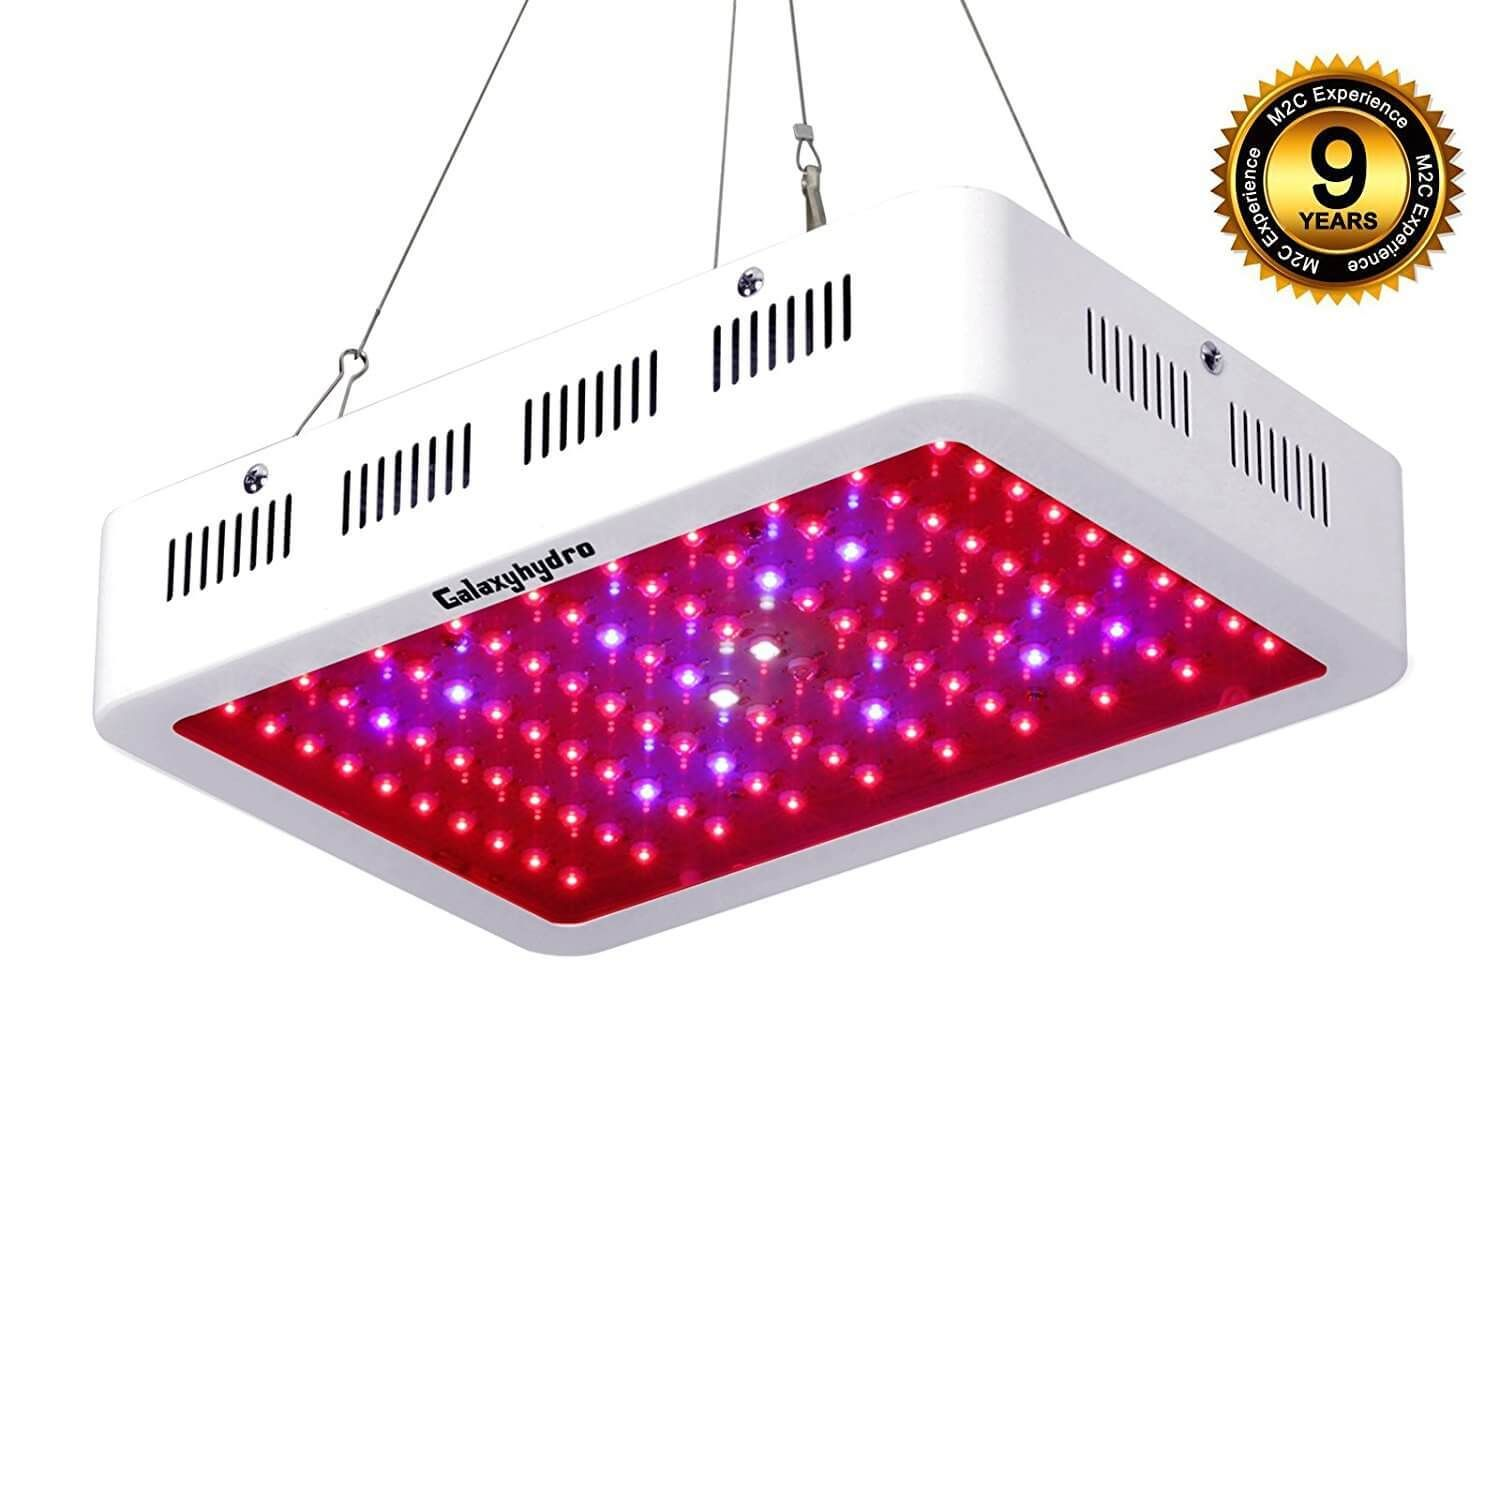 dimmable indoor version levels plant com customerpicks for spectrum amazon light red ankace plants upgrade best led grow blue head with dual lights timing